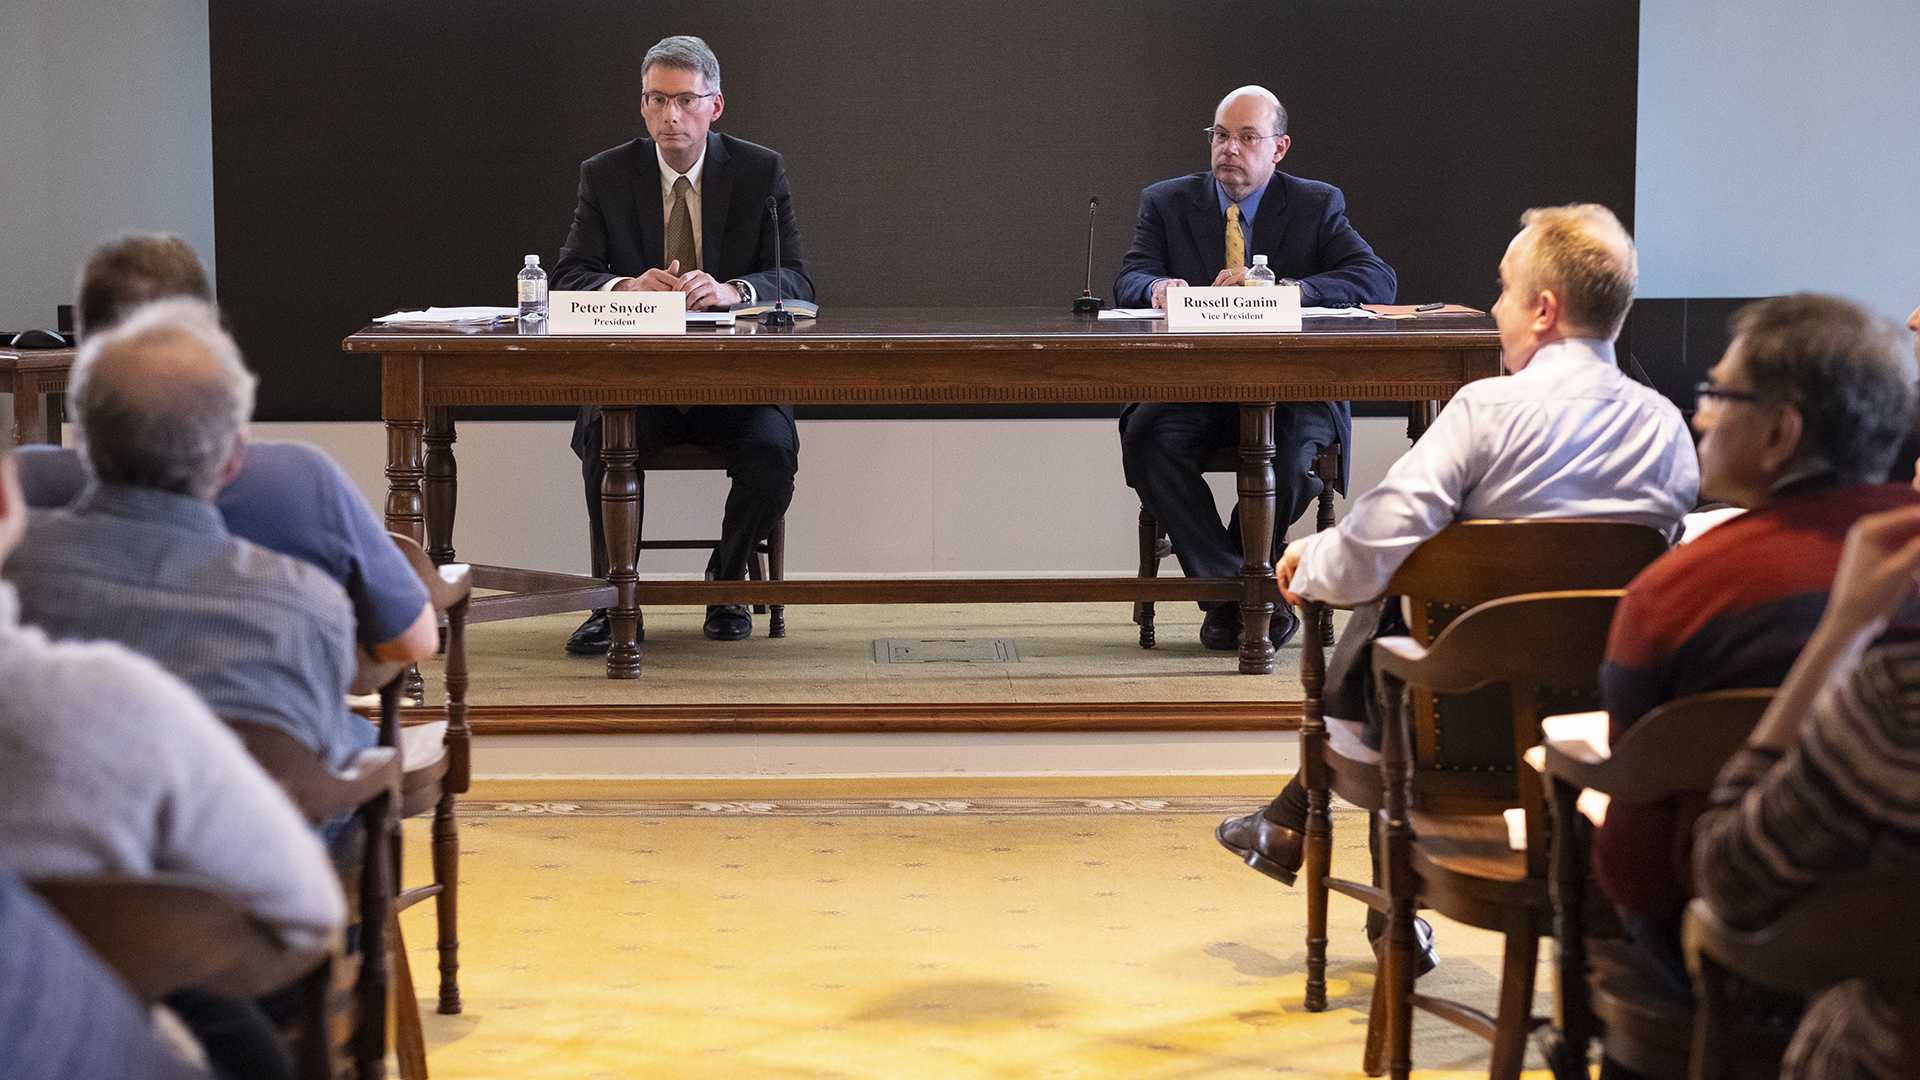 Outgoing Faculty Senate President Peter Snyder and current Vice President and incoming President Russel Ganim sit in the Old Capitol Senate Chamber on Tuesday, April 24, 2018. (Nick Rohlman/The Daily Iowan)